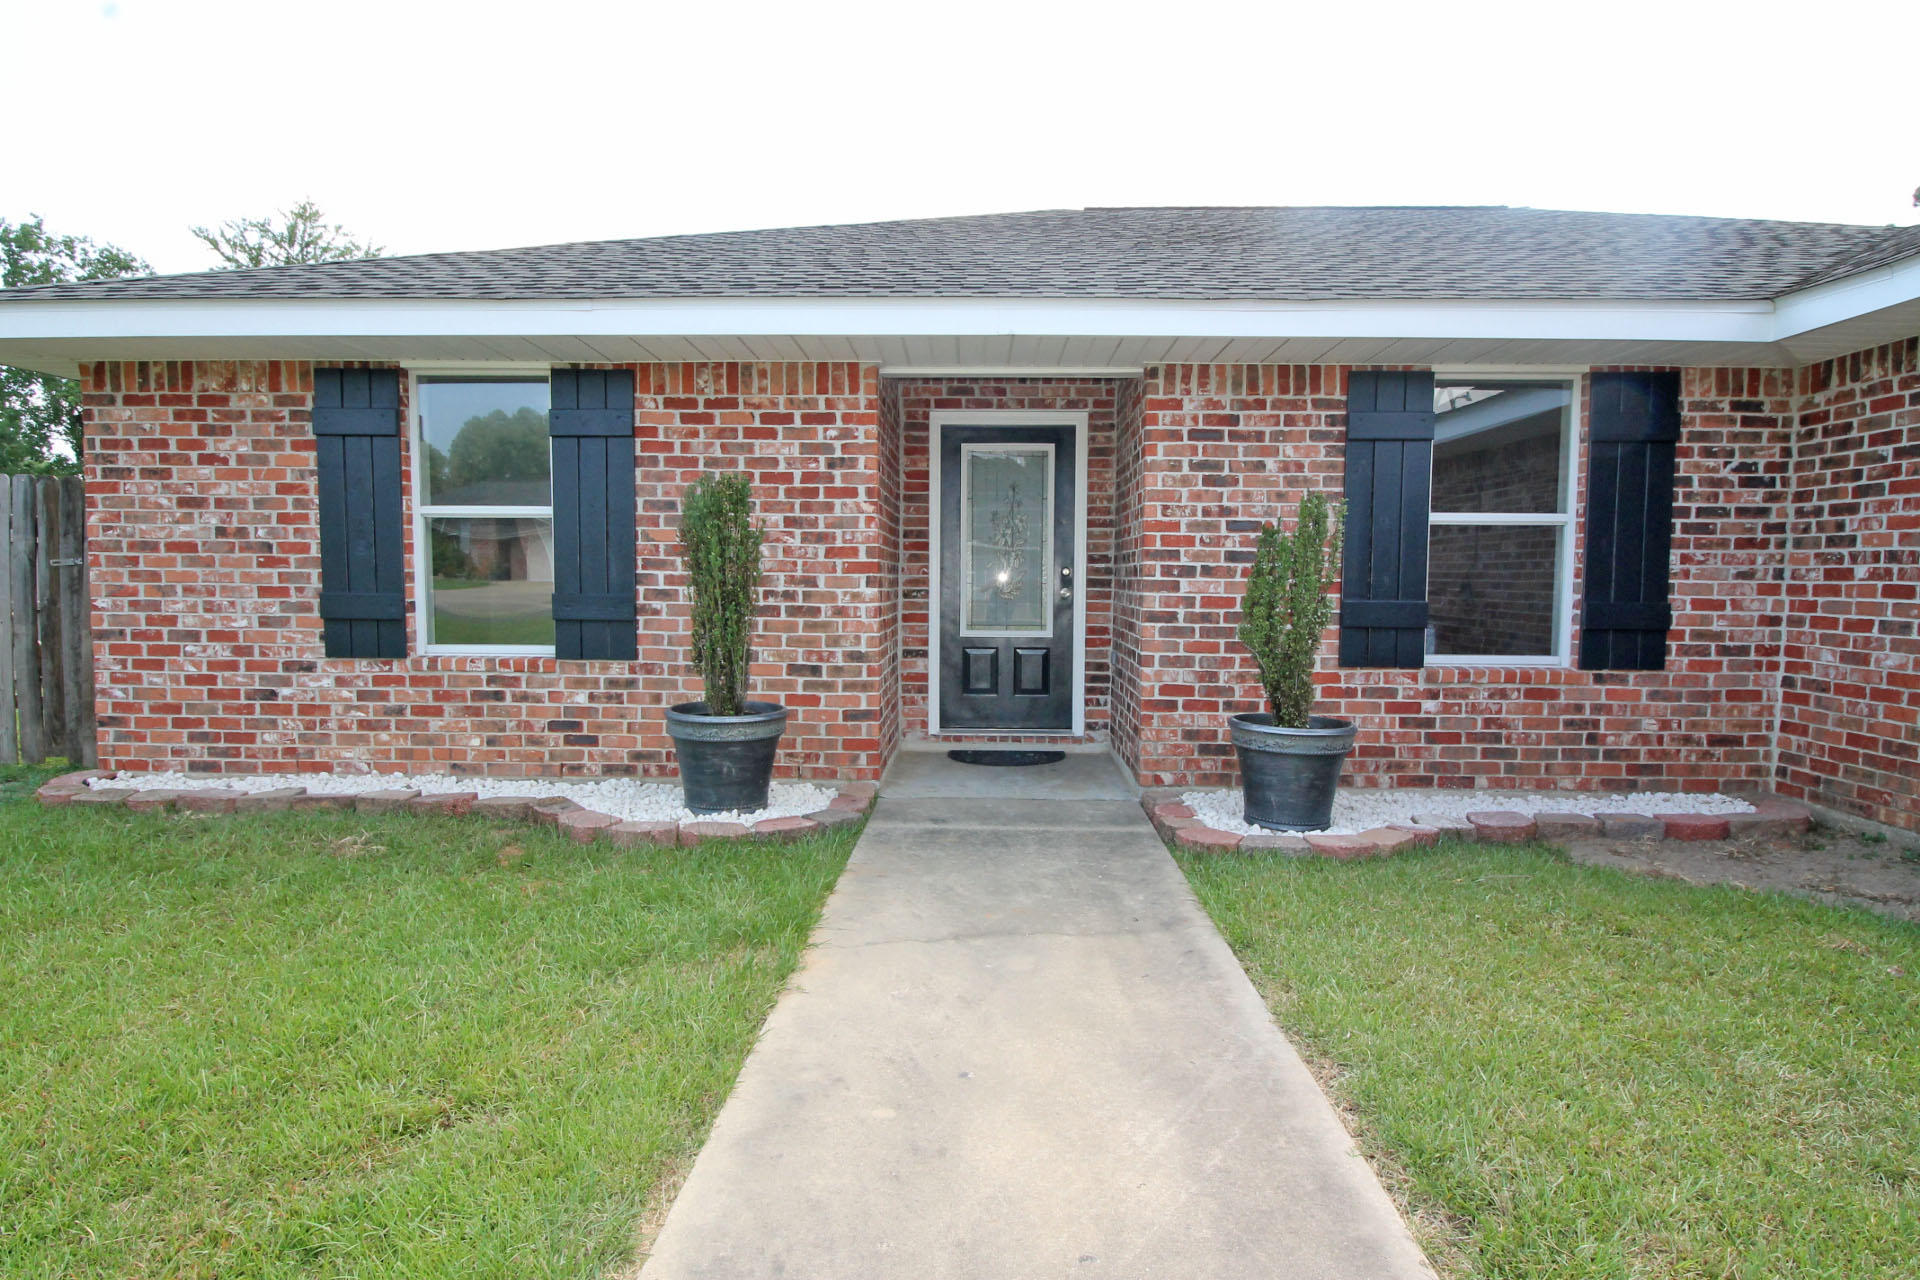 DeRidder home for sale, 109 Maverick St, DeRidder LA - $175,600